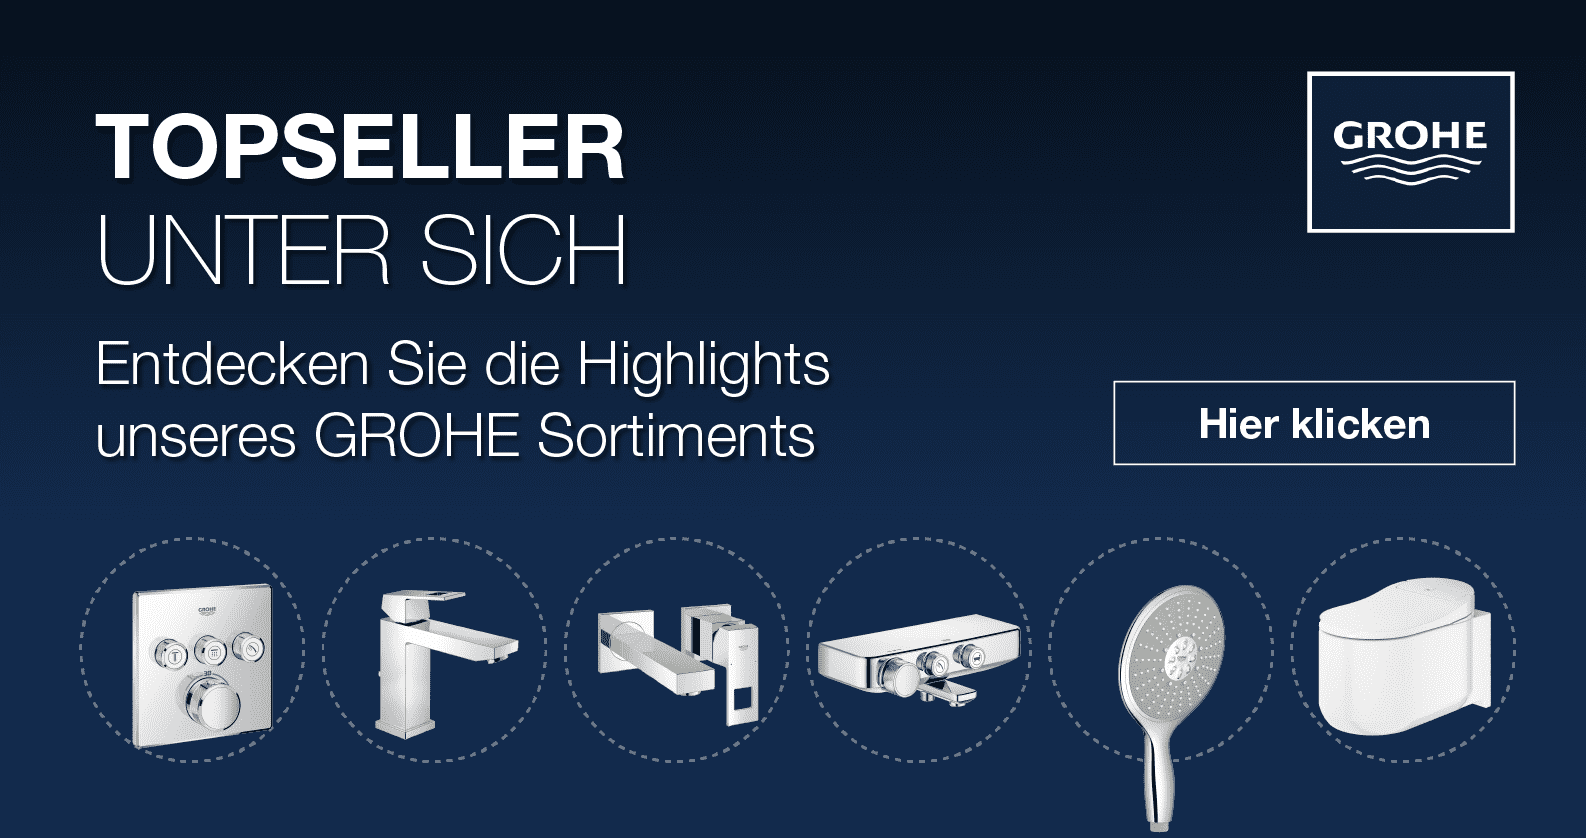 GROHE Topseller